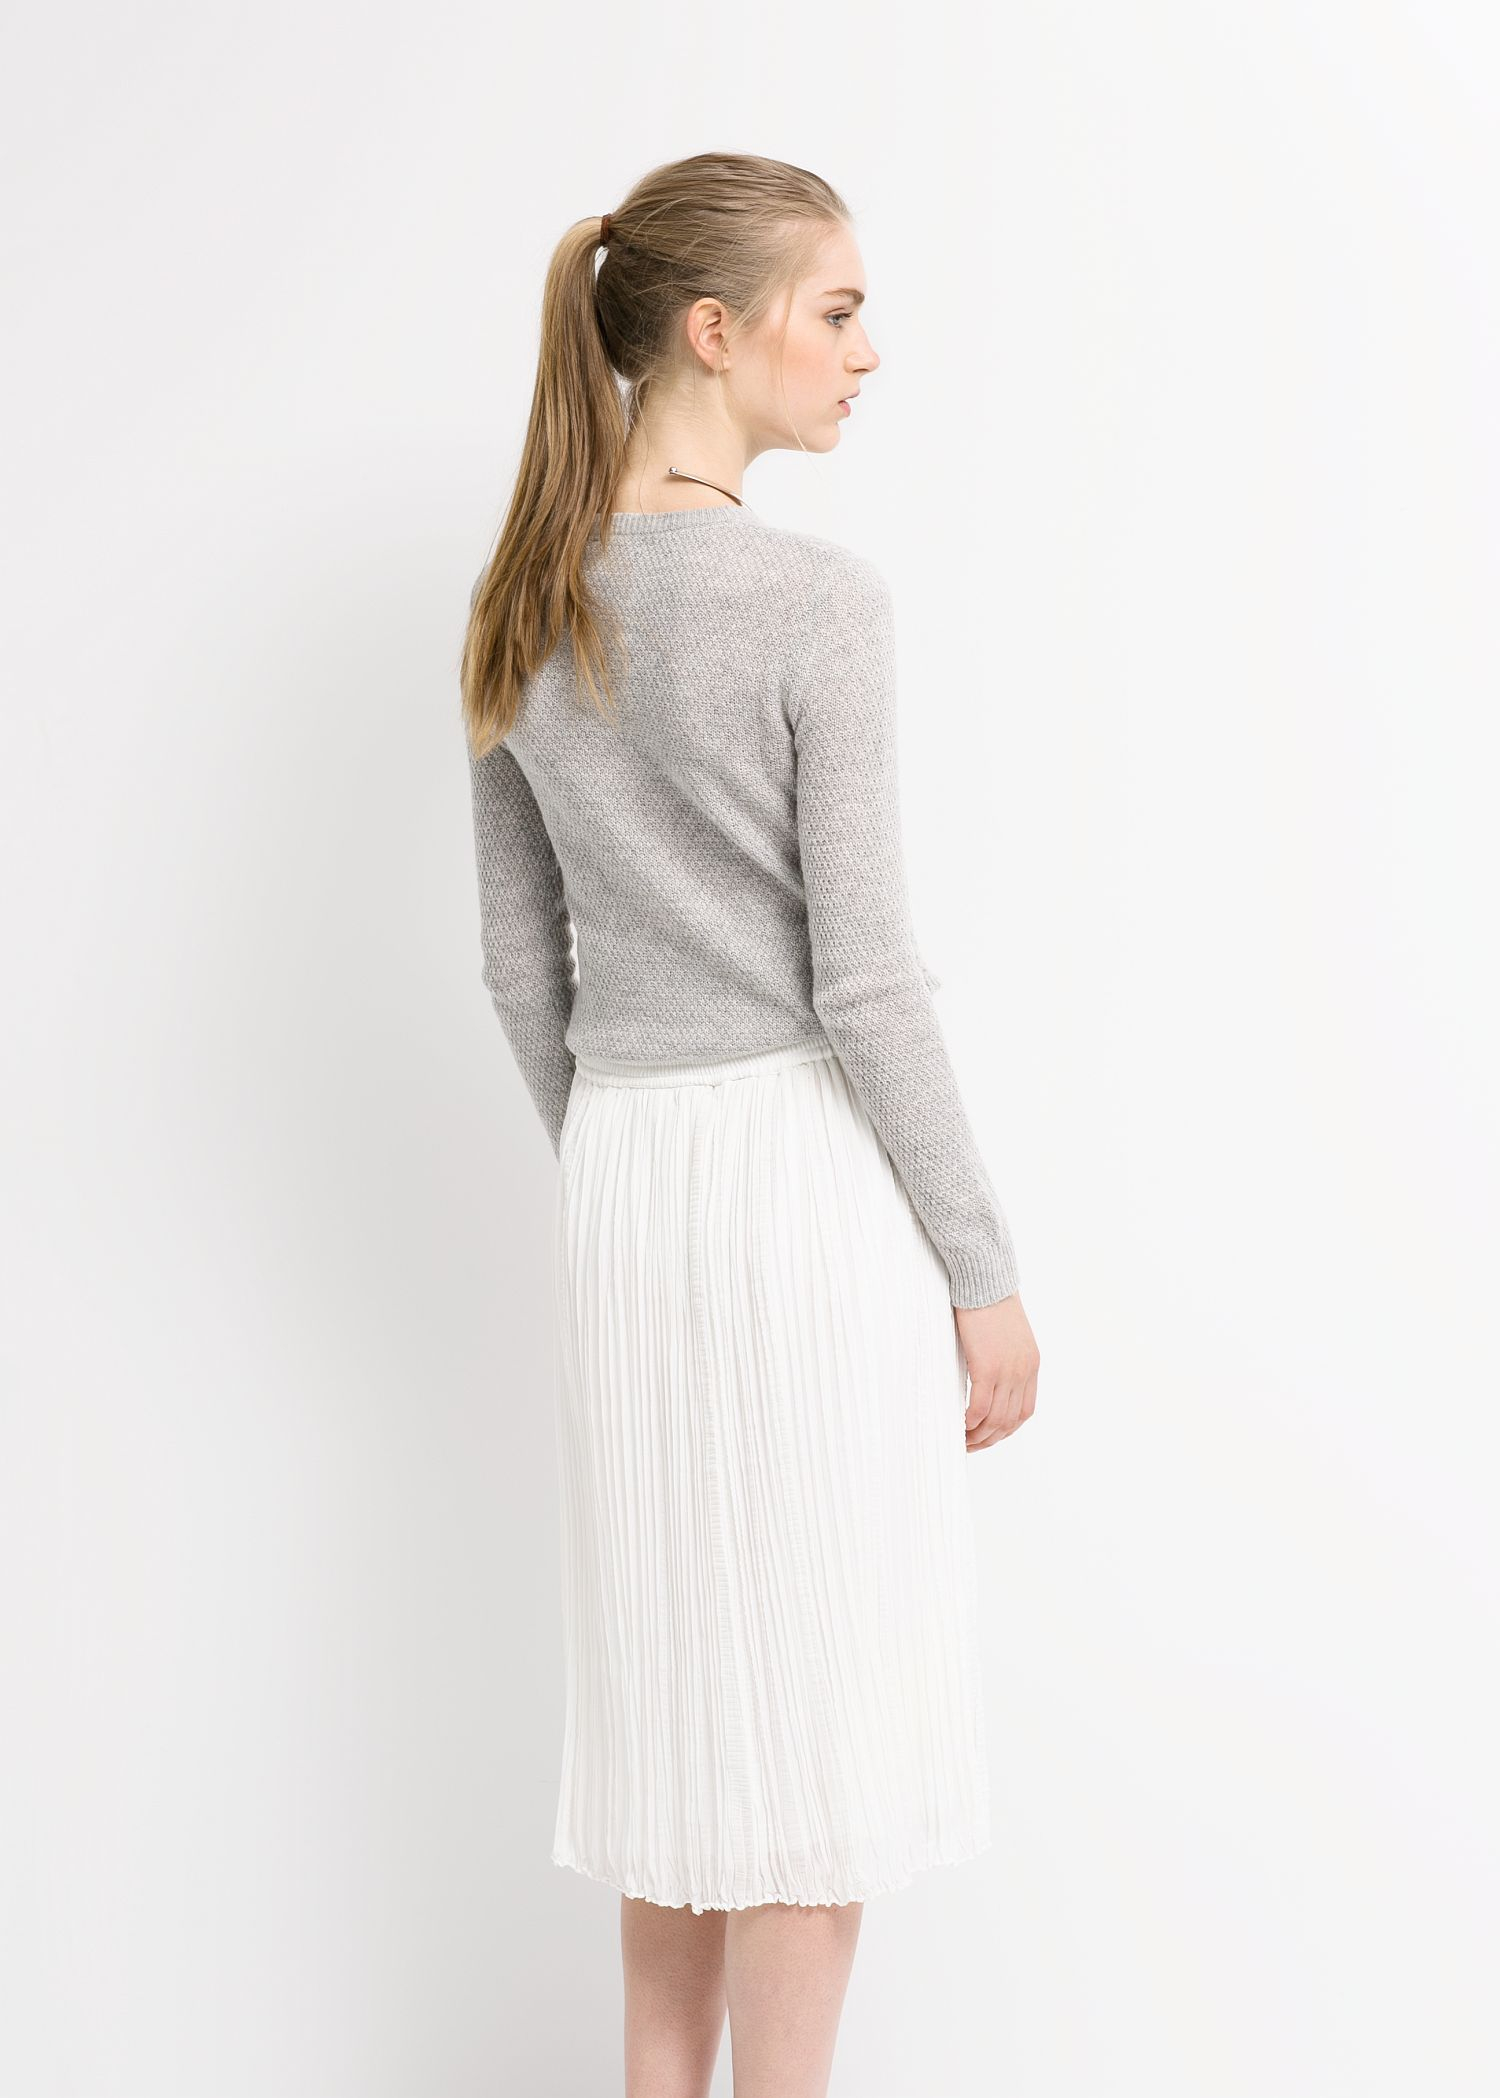 dcd56a512f Mango Textured Pleated Skirt in White - Lyst